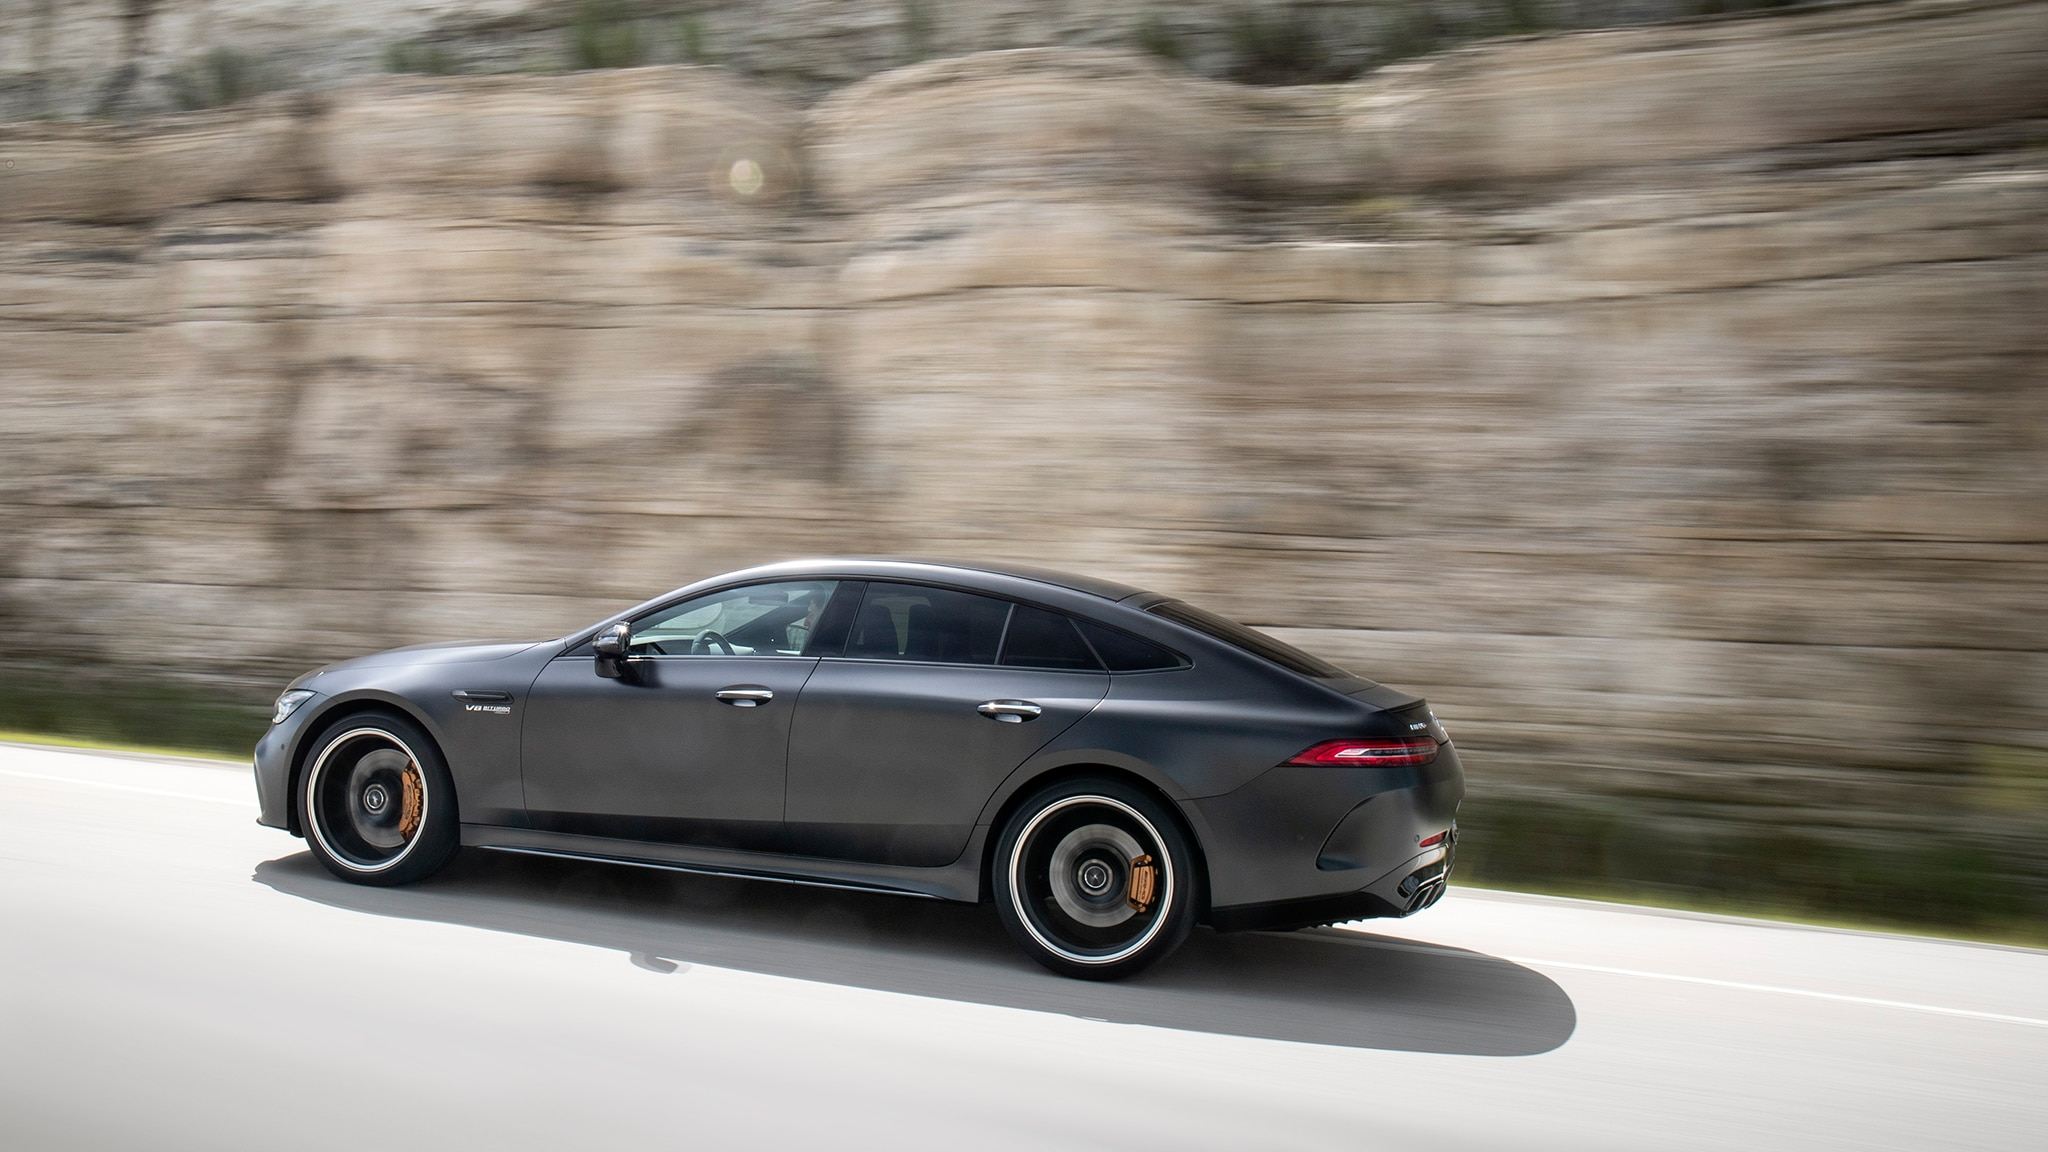 2019 mercedes amg gt 4 door first drive review automobile magazine. Black Bedroom Furniture Sets. Home Design Ideas